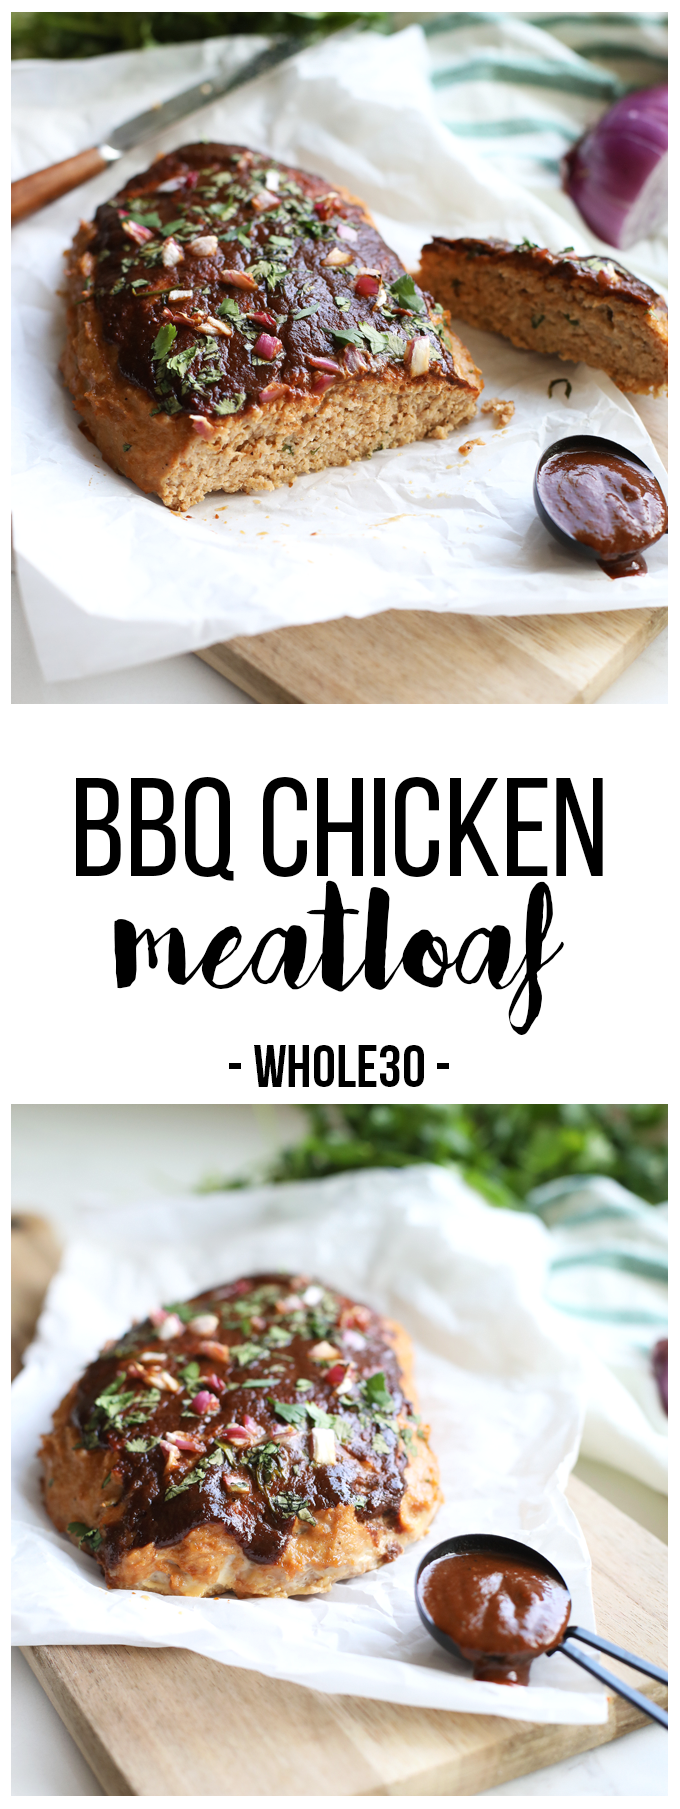 This BBQ Chicken Meatloaf is so simple yet so full of flavor! It is whole30 compliant, paleo and perfect for an easy weeknight dinner!